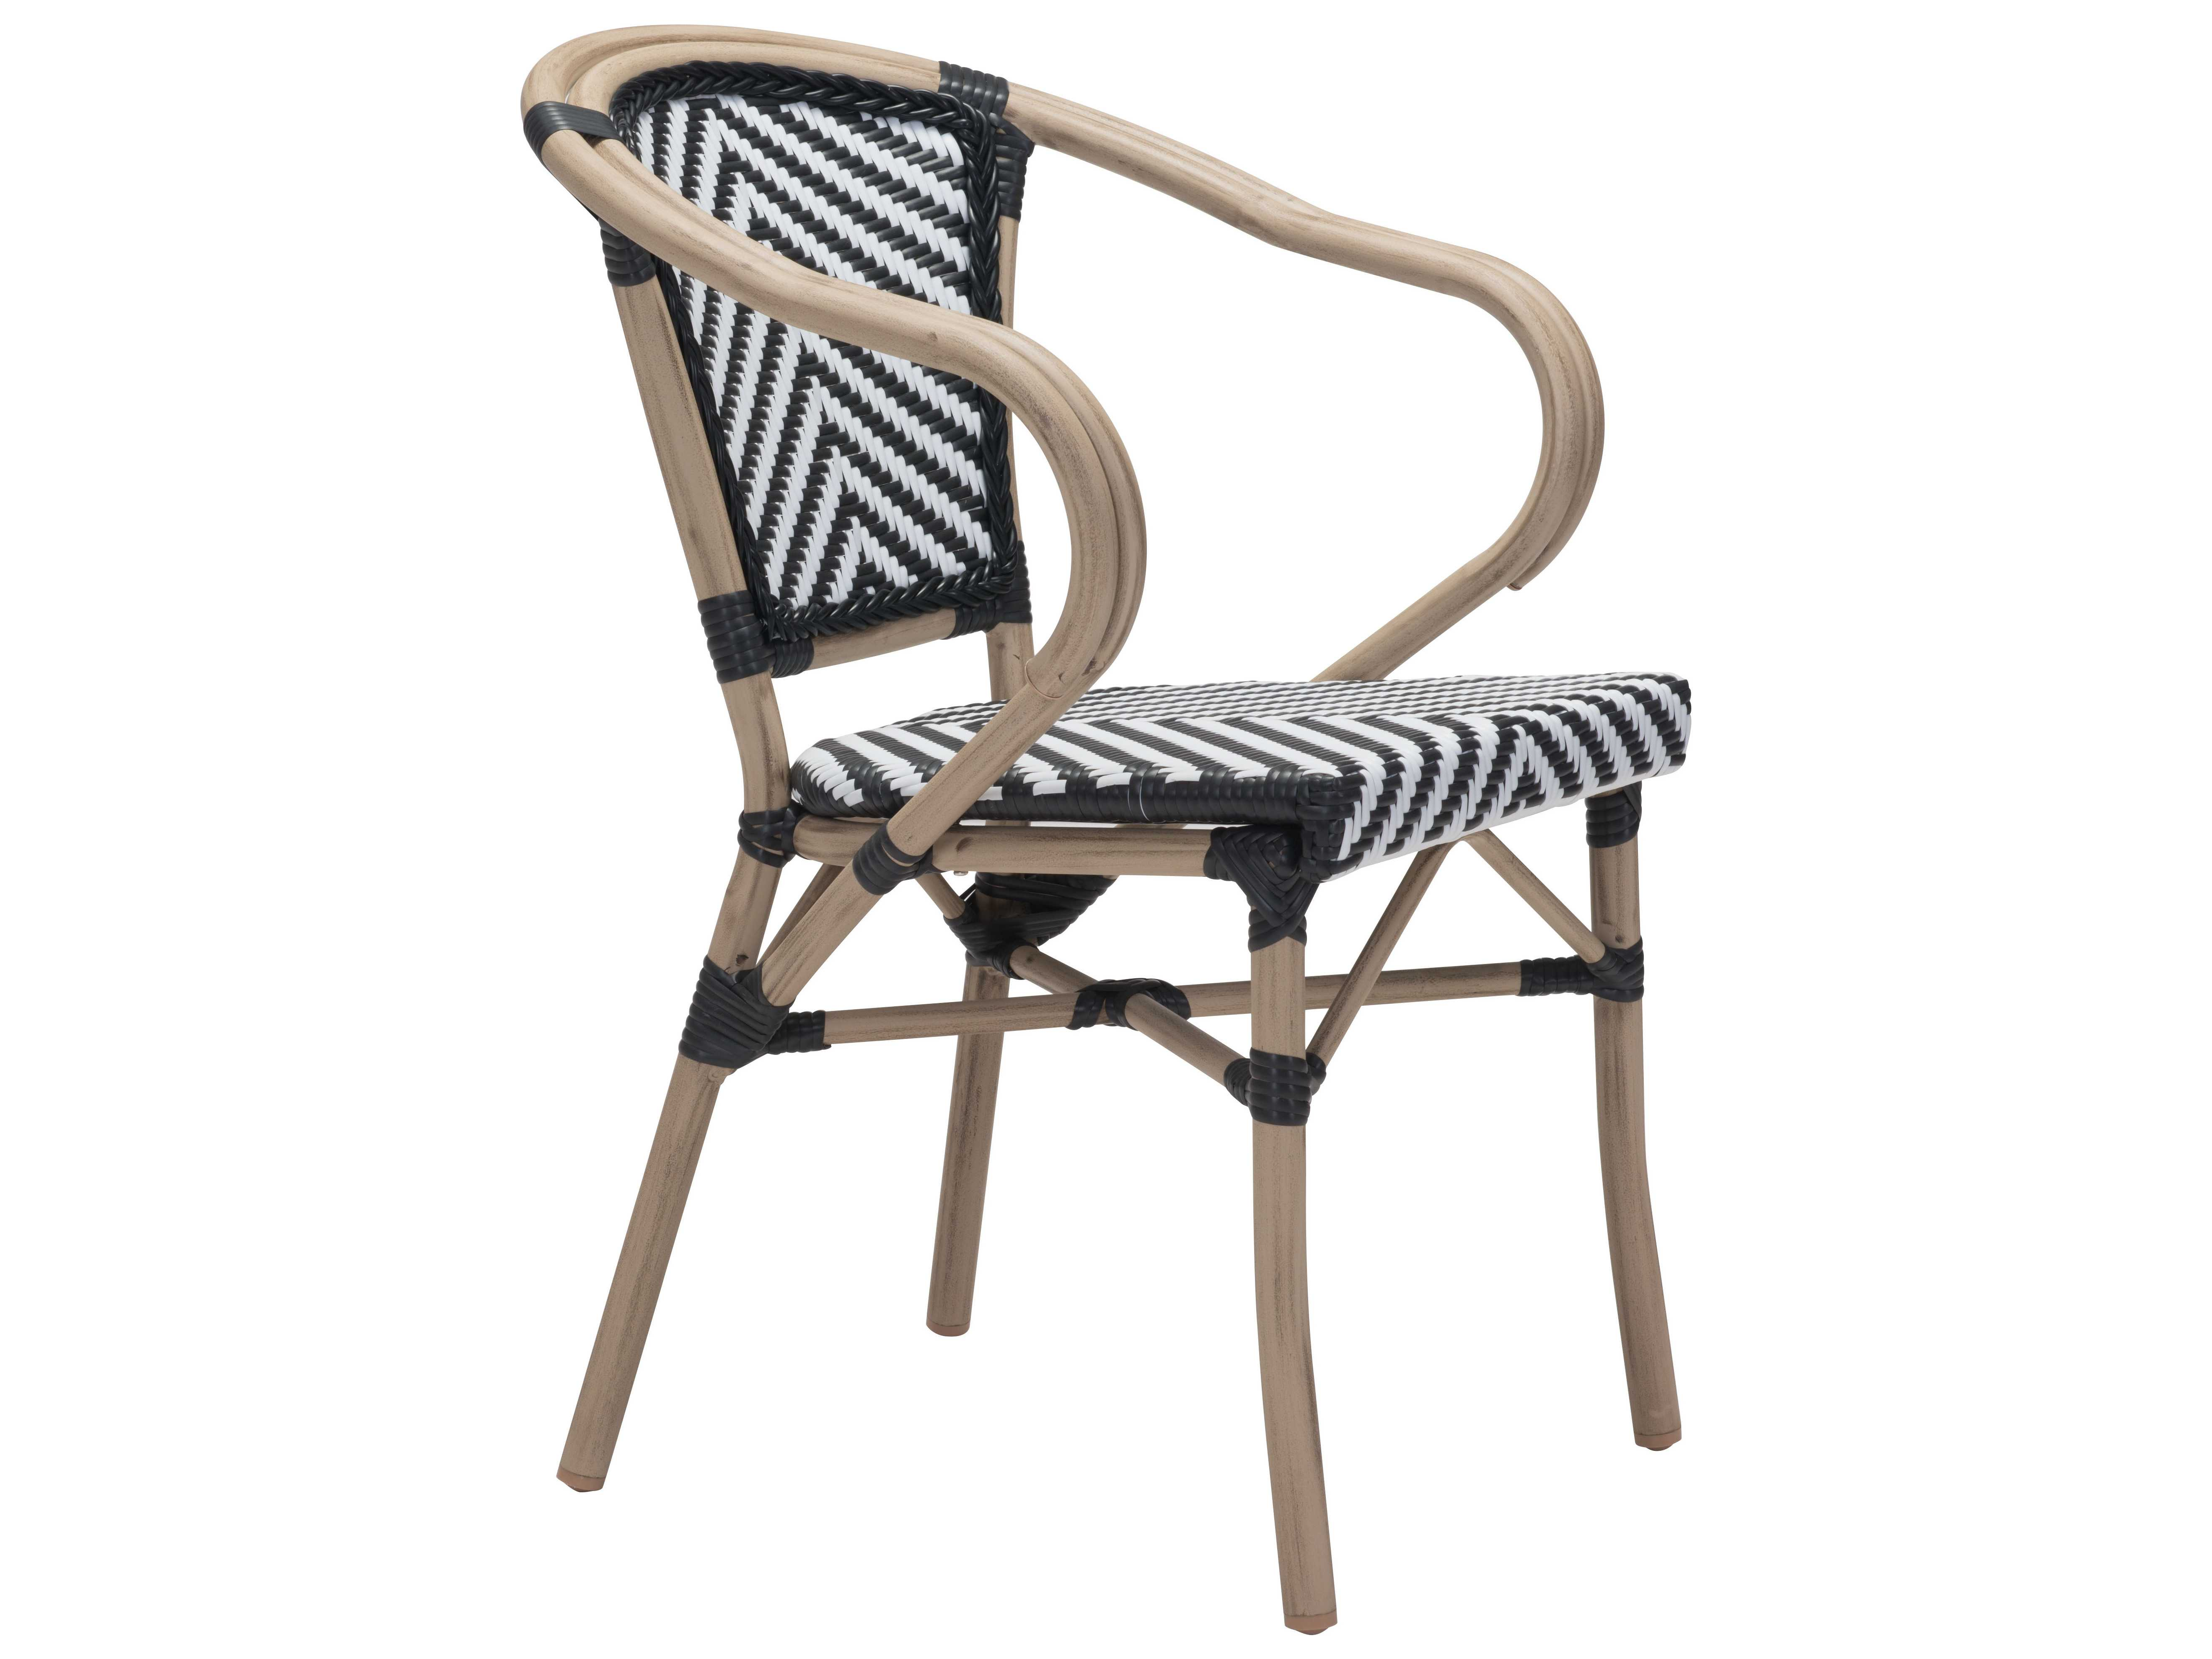 Zuo Outdoor Paris Aluminum Wicker Dining Arm Chair in ...